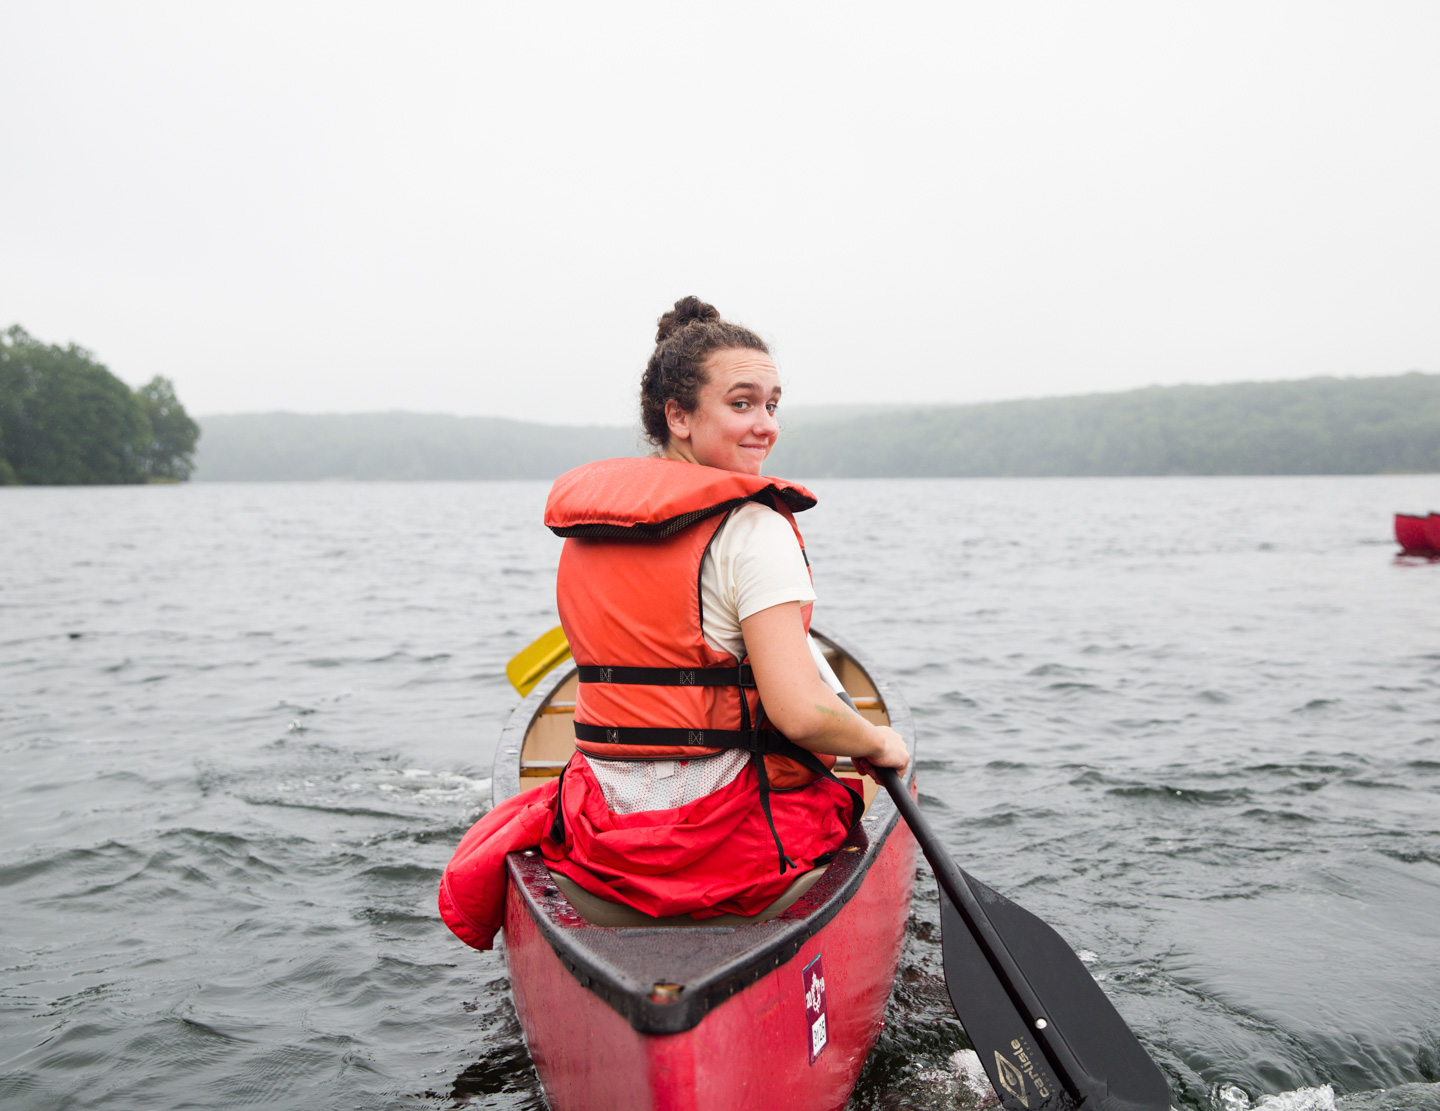 Counselor canoeing in the lake